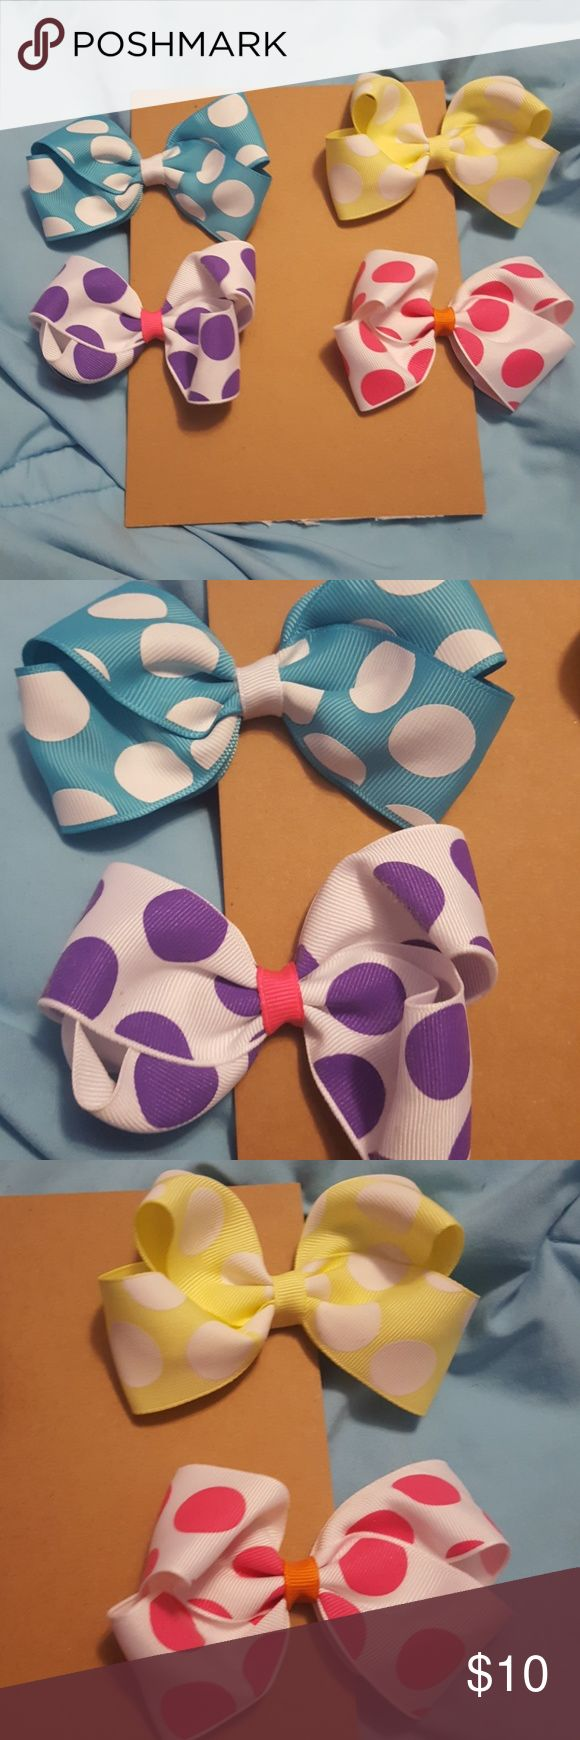 The Perfectly Pokadoted set, Alligator clip bows 4 for $10 or 1 for $3 Featuring  a blue with white polka dots and white center A white with purple polka dots and pink center A pale yellow with white polka dots A white with hot pi k polka dots and a orange center Accessories Hair Accessories